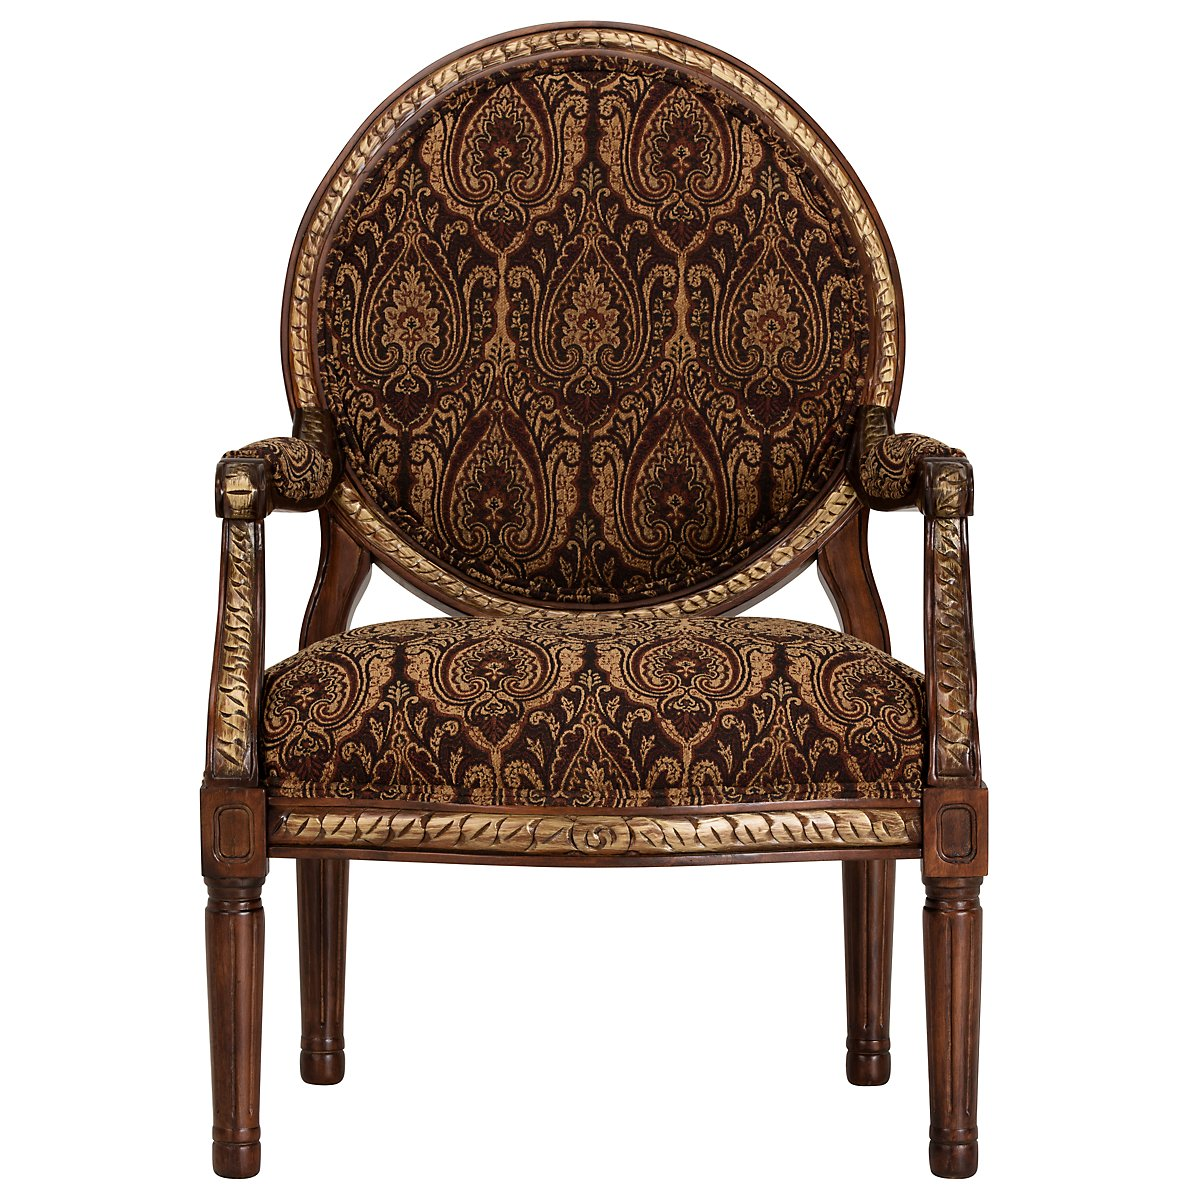 Irwindale Paisley Fabric Accent Chair - City Furniture: Irwindale Paisley Fabric Accent Chair